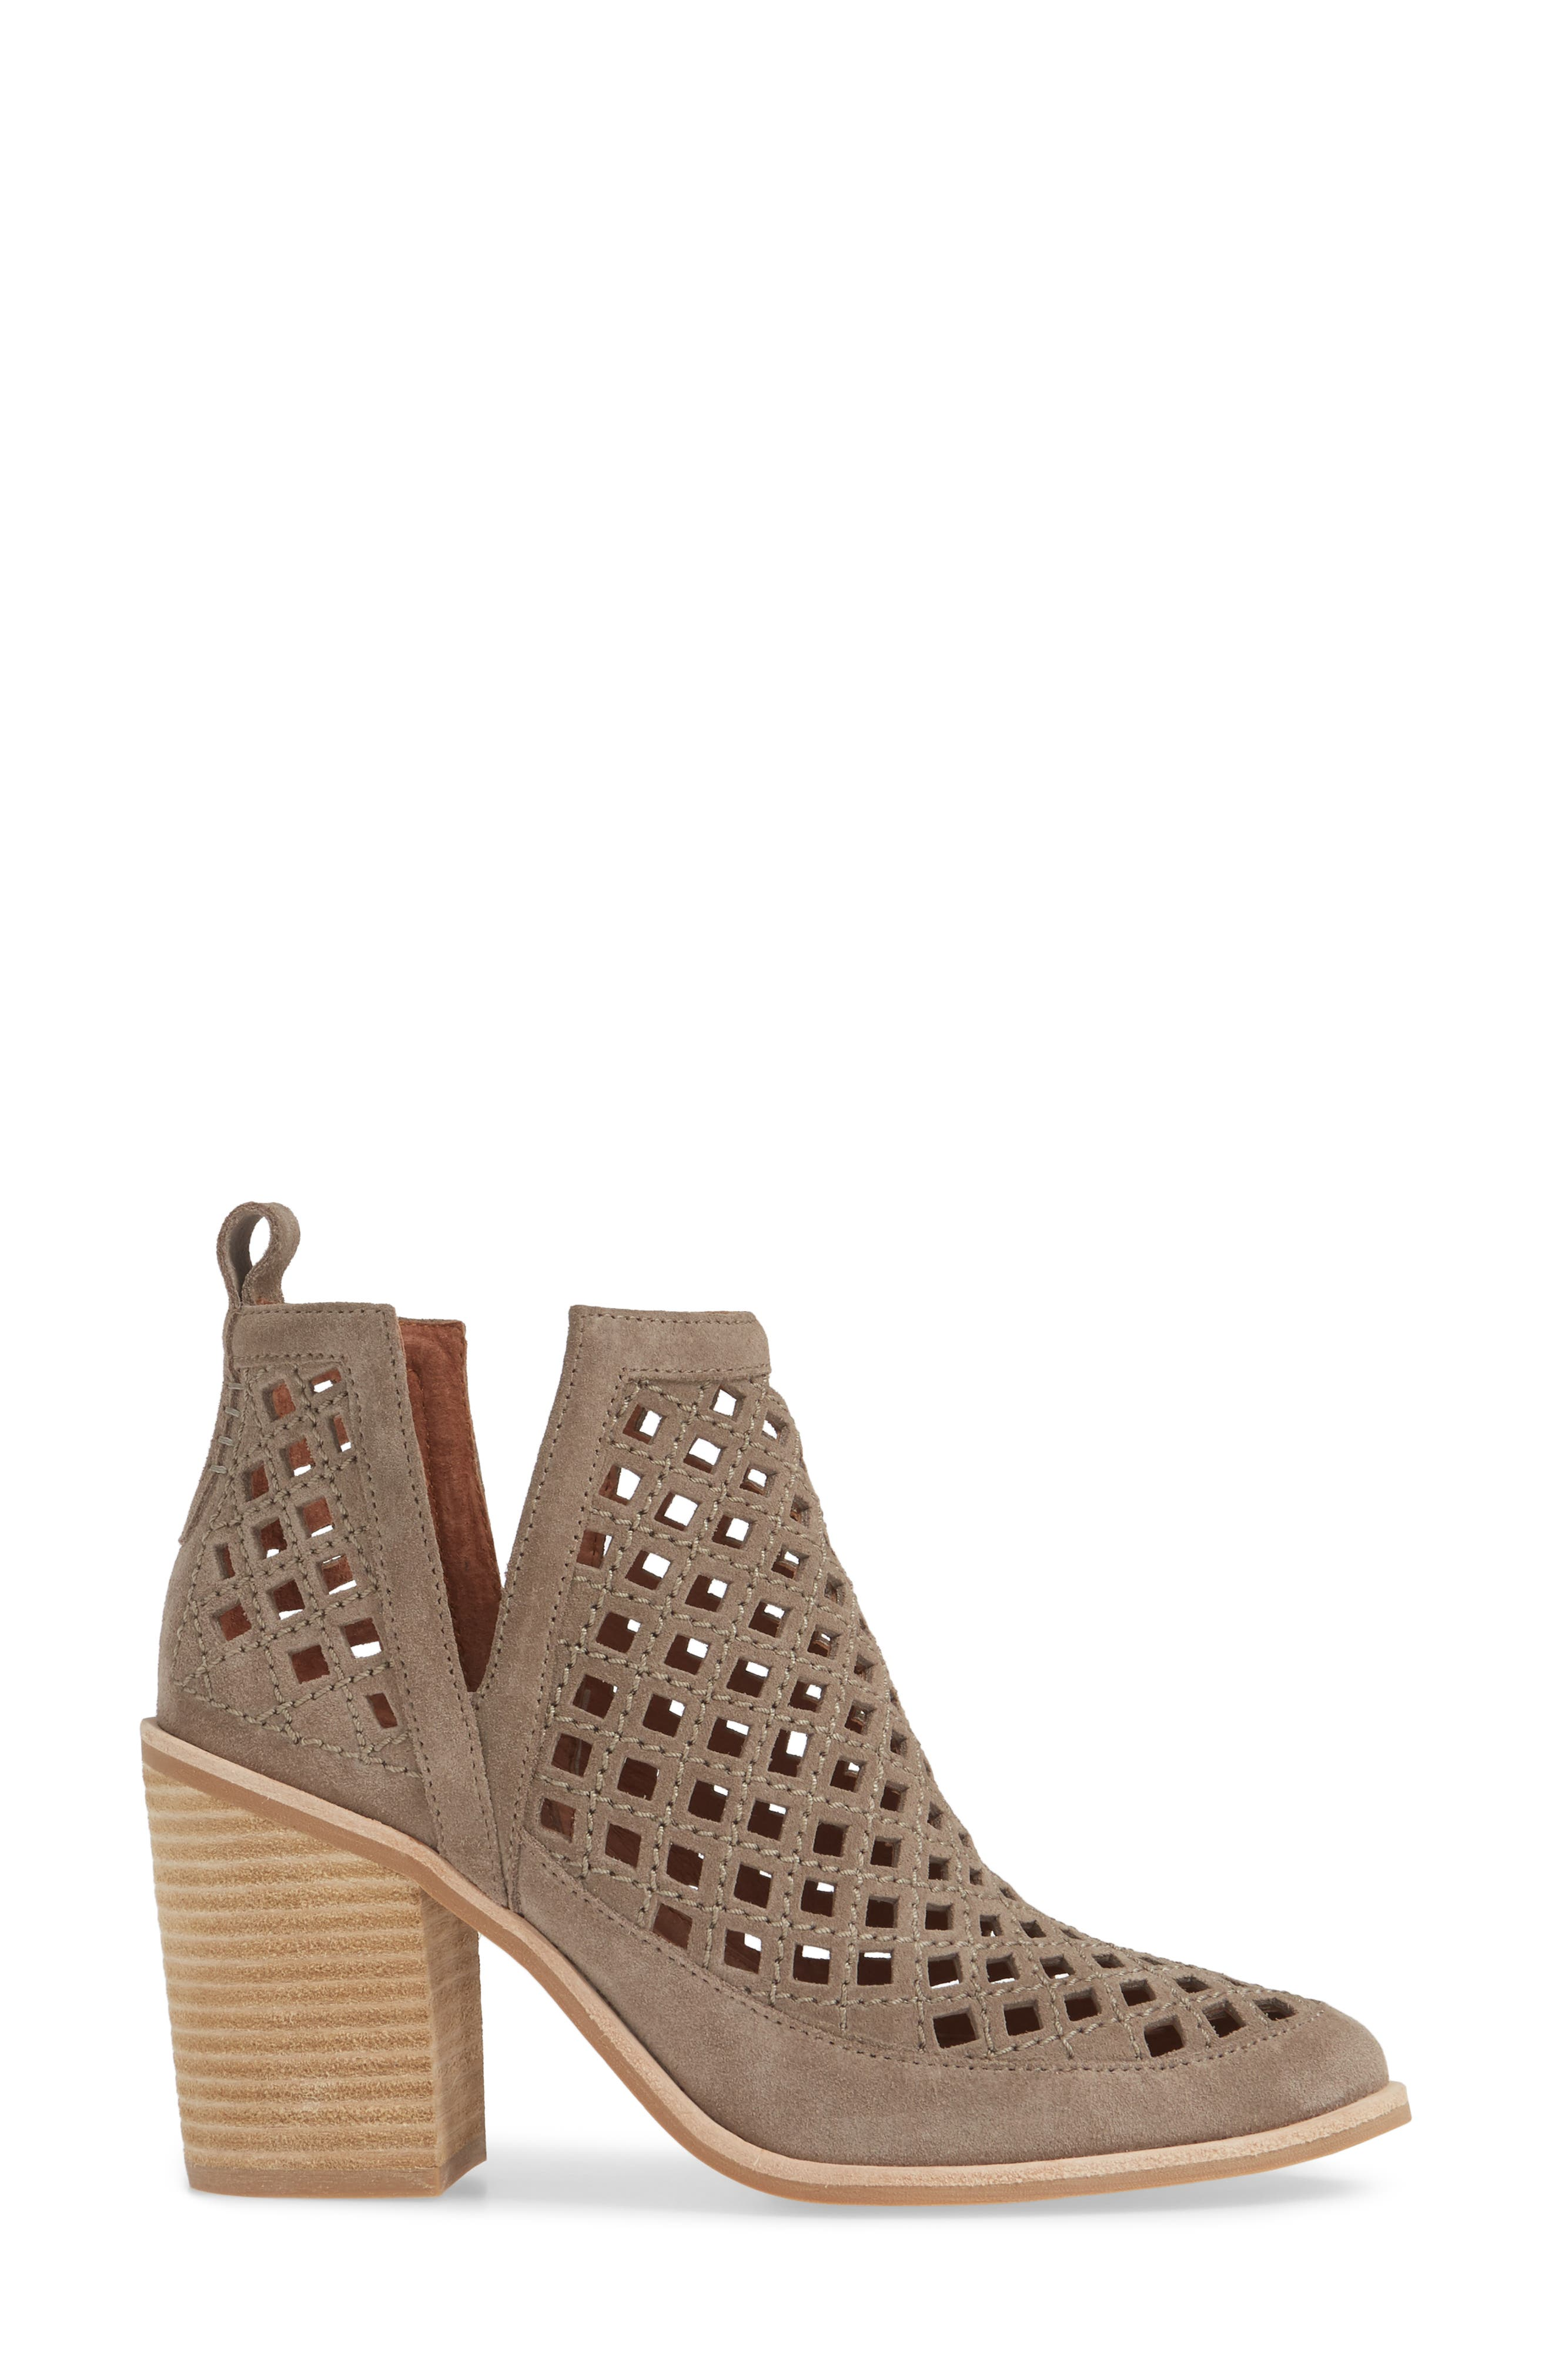 JEFFREY CAMPBELL, Kamet Bootie, Alternate thumbnail 3, color, TAUPE SUEDE